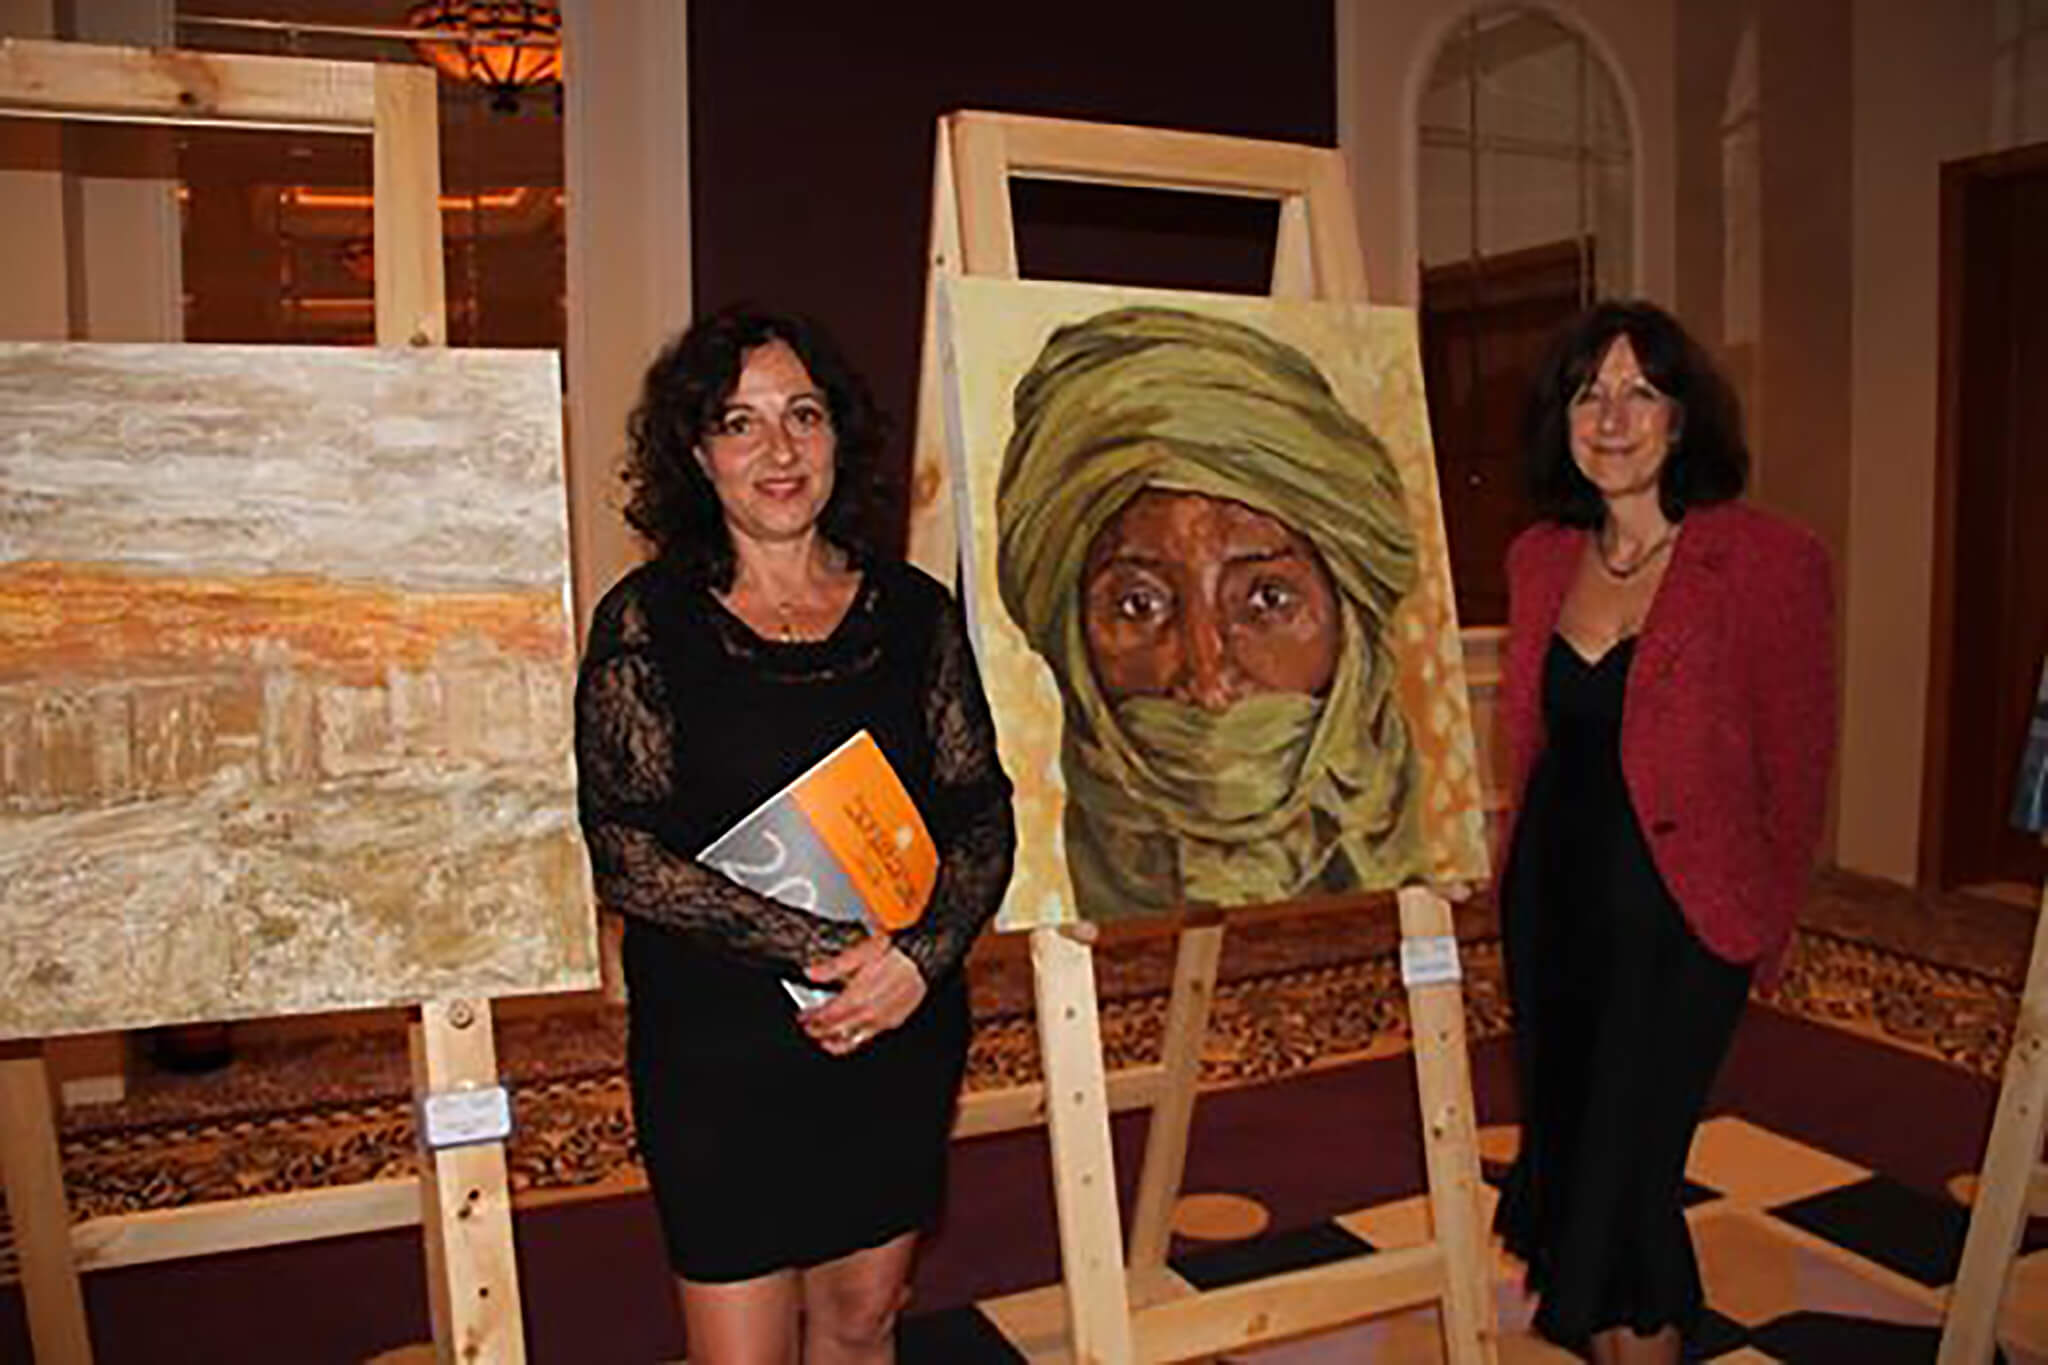 Artist Stella Tooth with her Saharan Tuareg portrait at Egypt's first art biennale in Sharm El Sheikh.